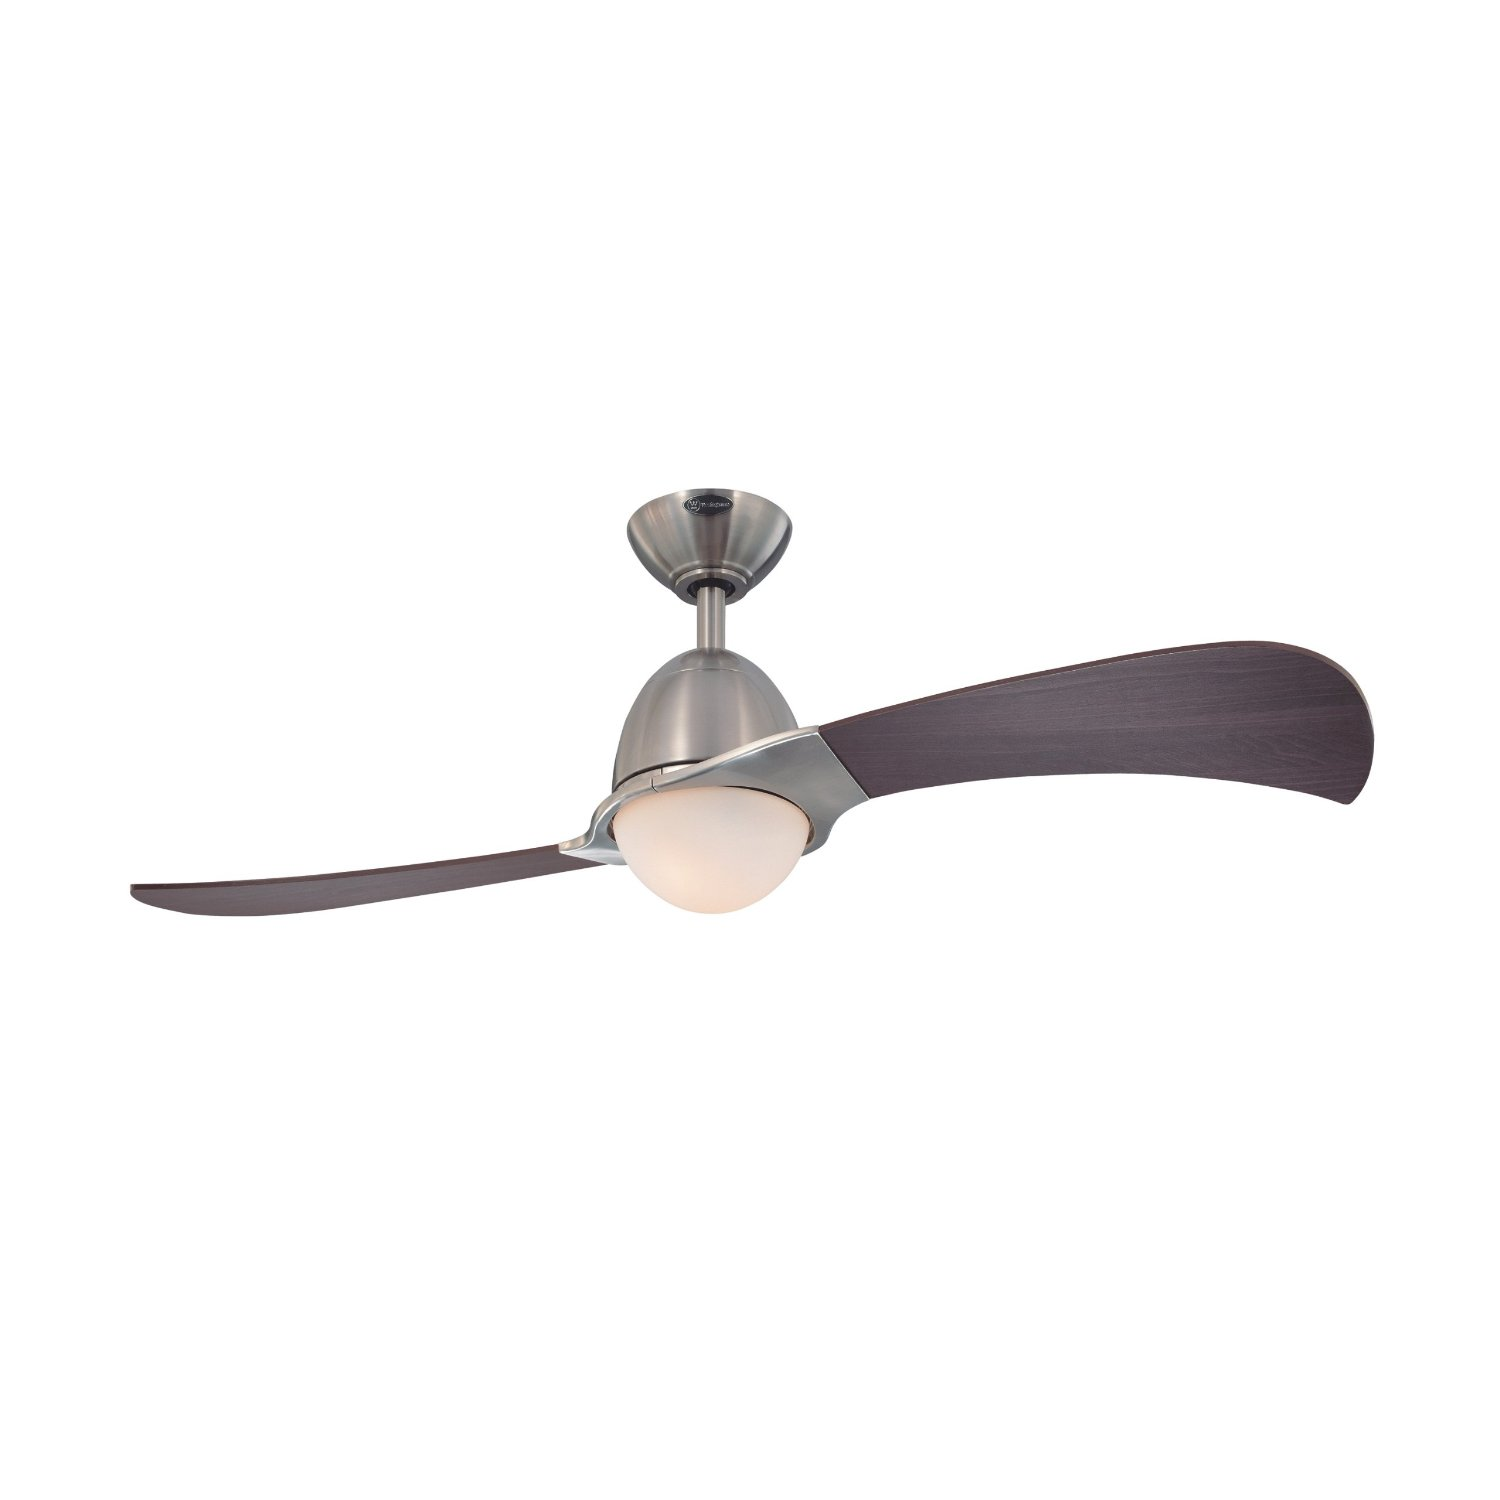 Westinghouse solana two blade home depot ceiling fan review westinghouse solana two blade ceiling fan aloadofball Images